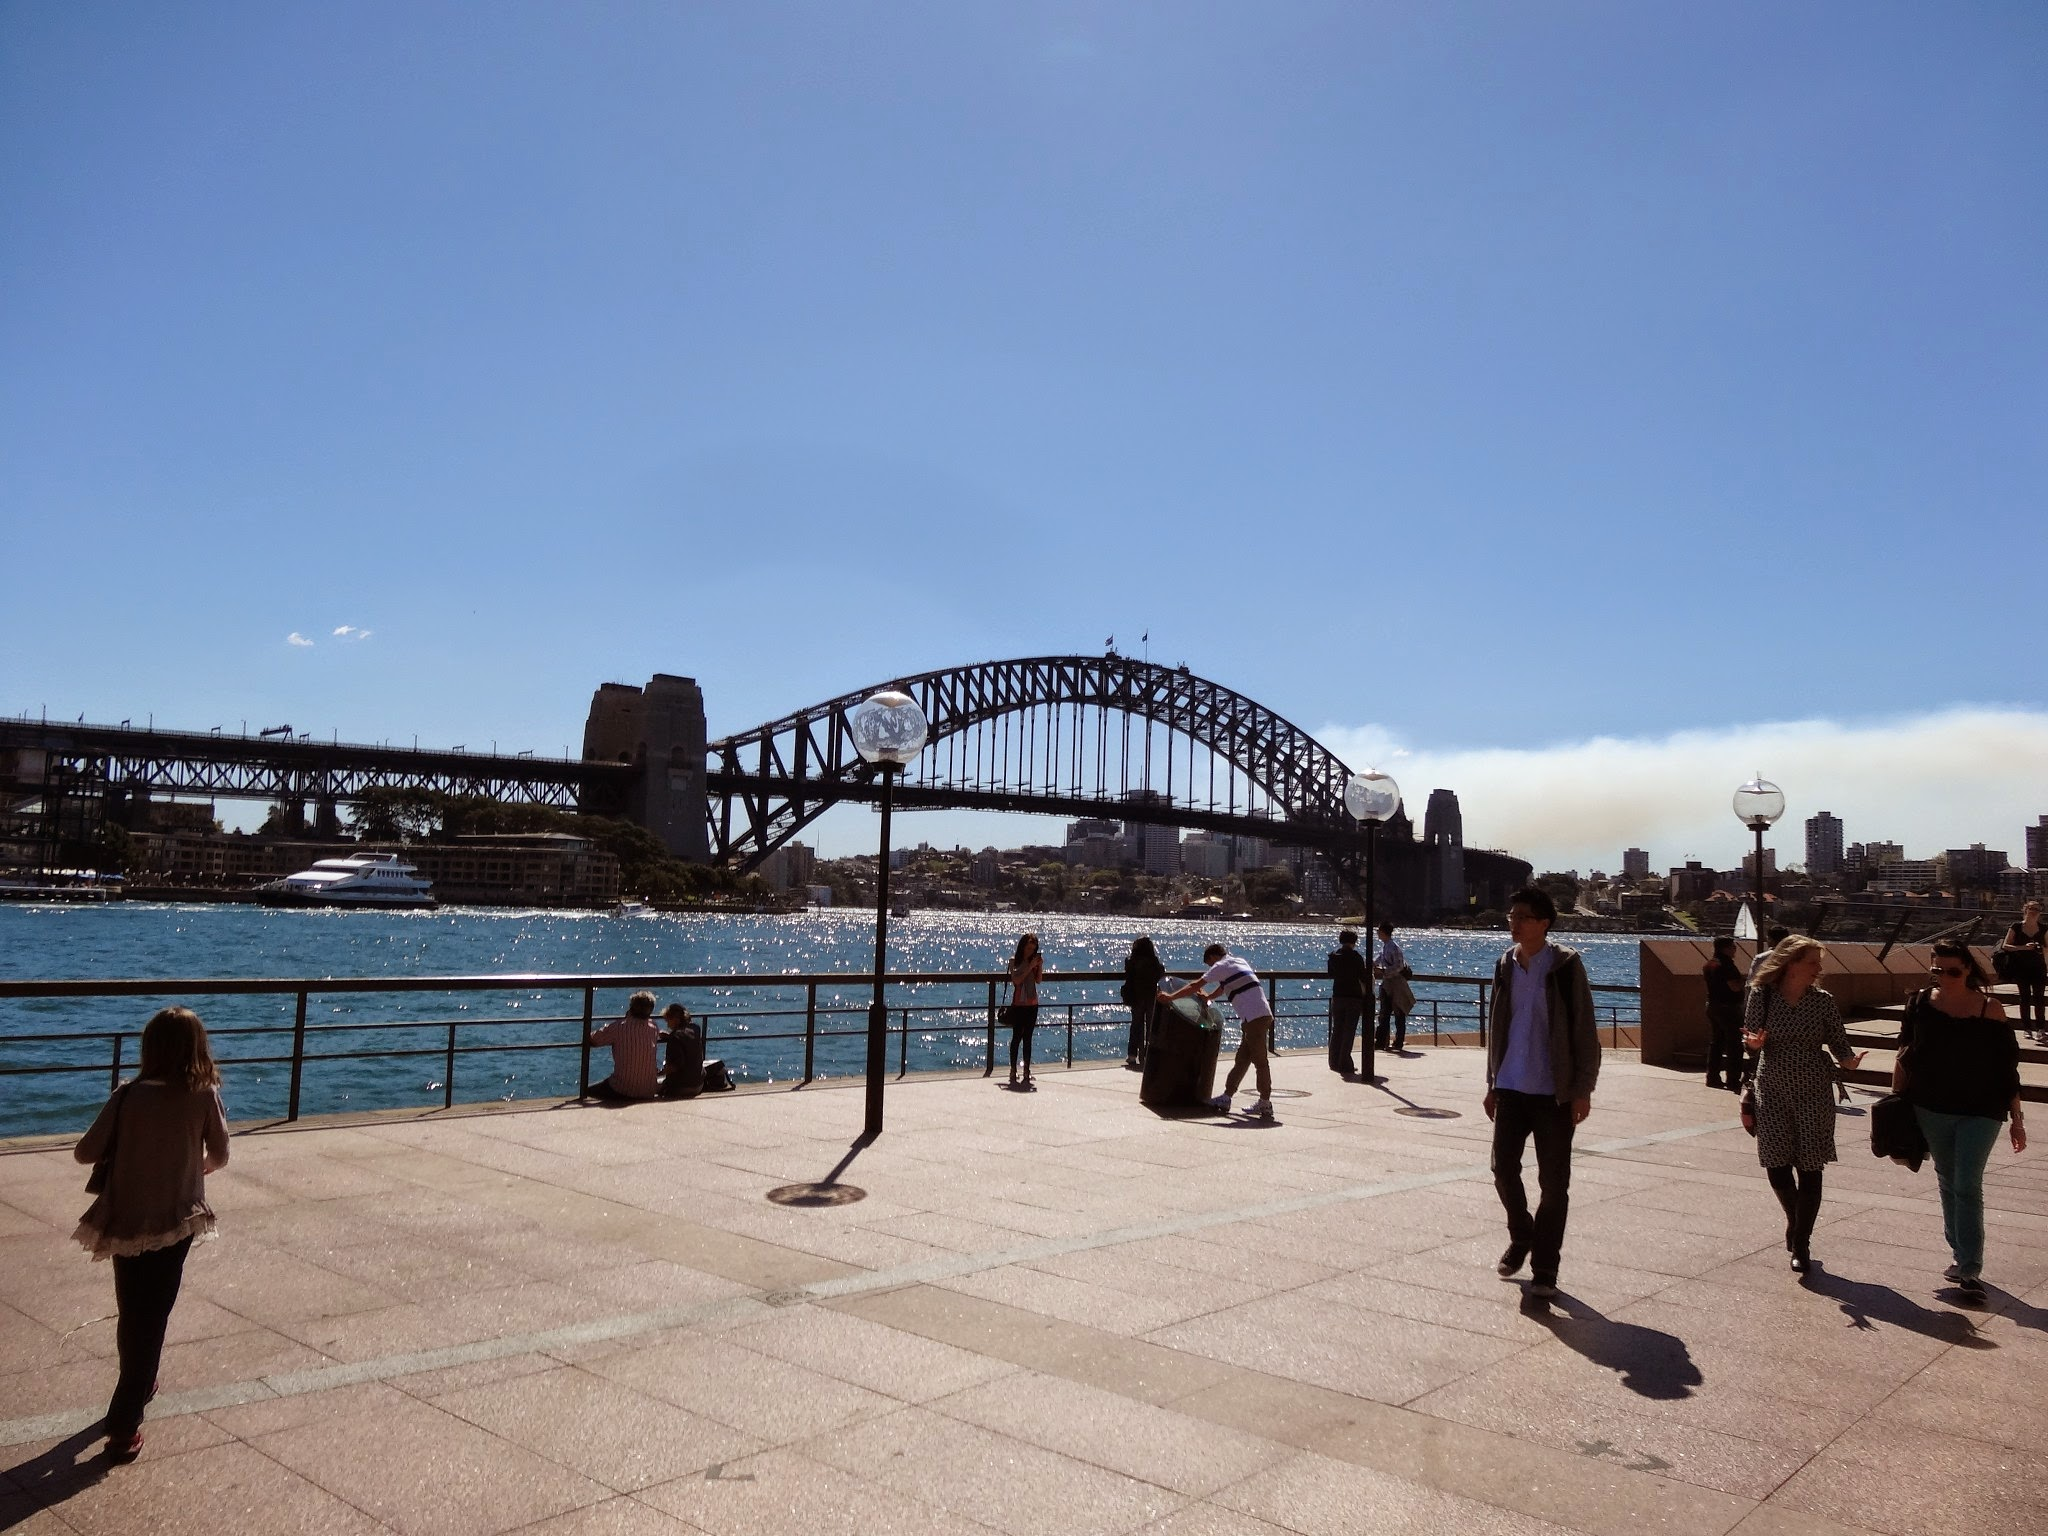 View of the Sydney Harbour Bridge from Circular Quay